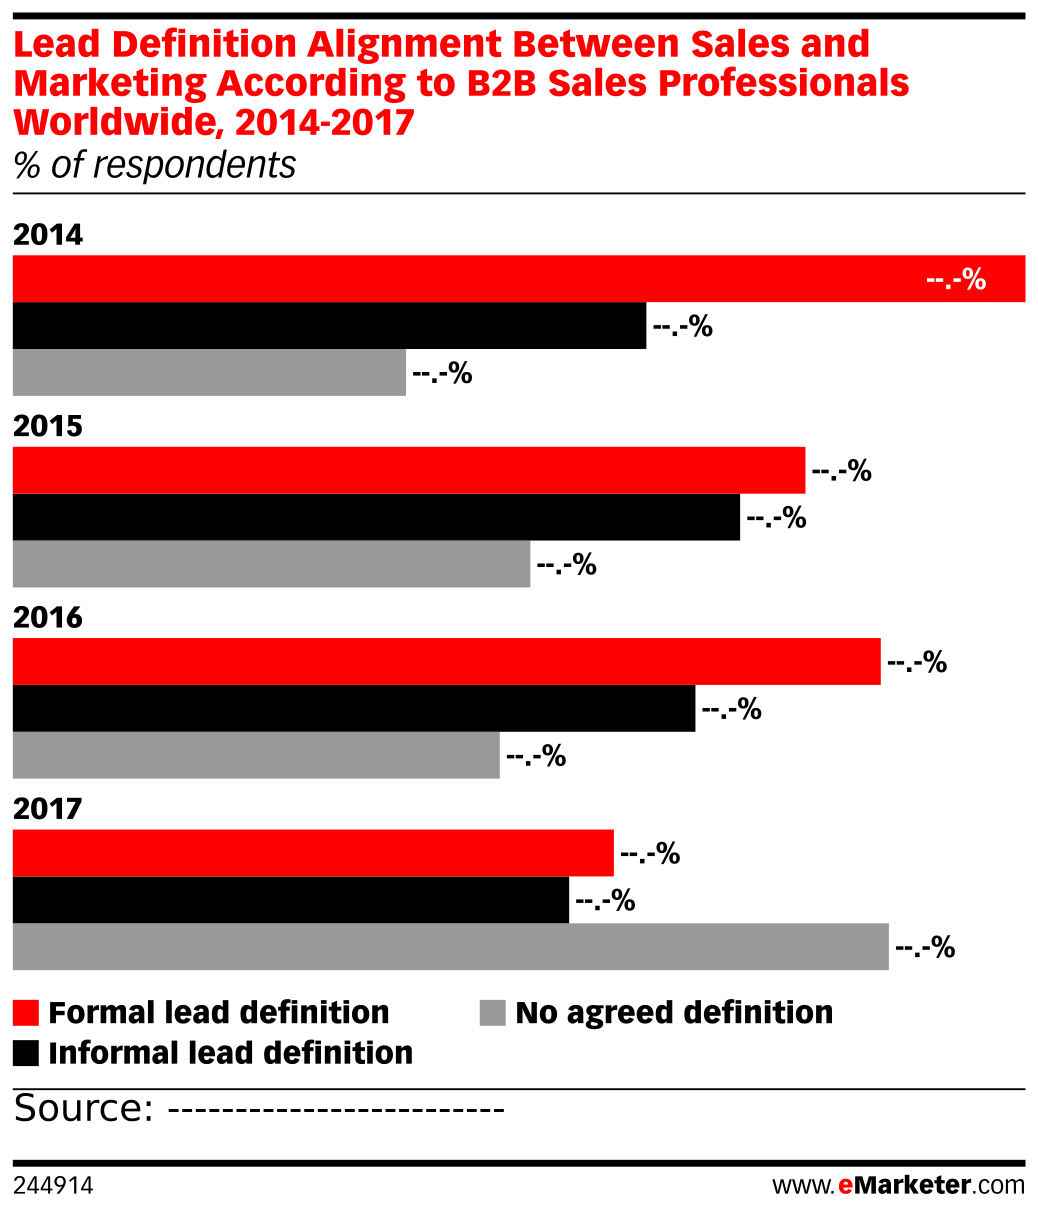 Lead Definition Alignment Between Sales and Marketing According to B2B Sales Professionals Worldwide, 2014-2017 (% of respondents)